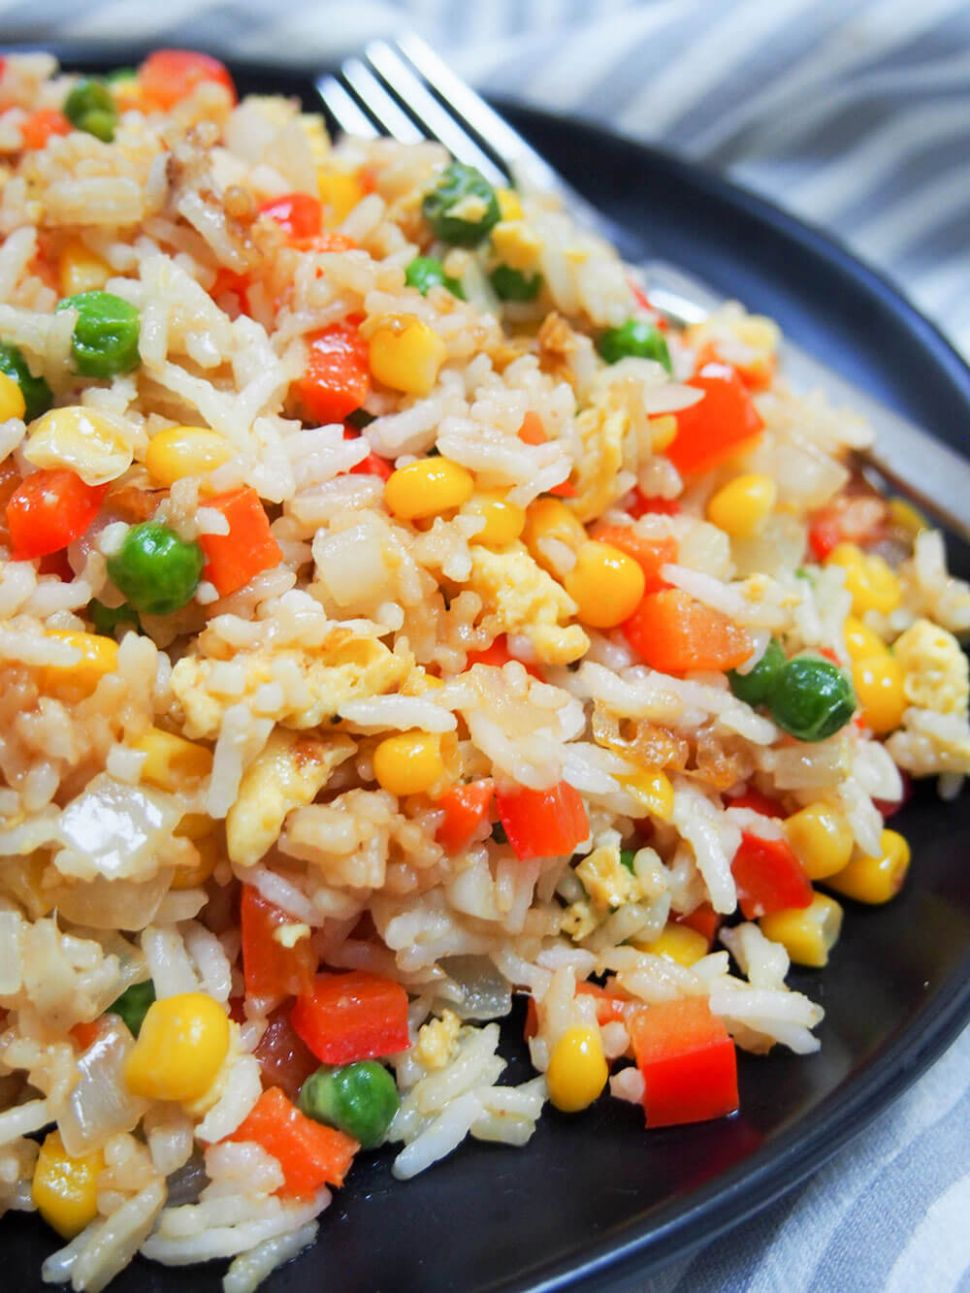 Vegetable egg fried rice - Caroline's Cooking